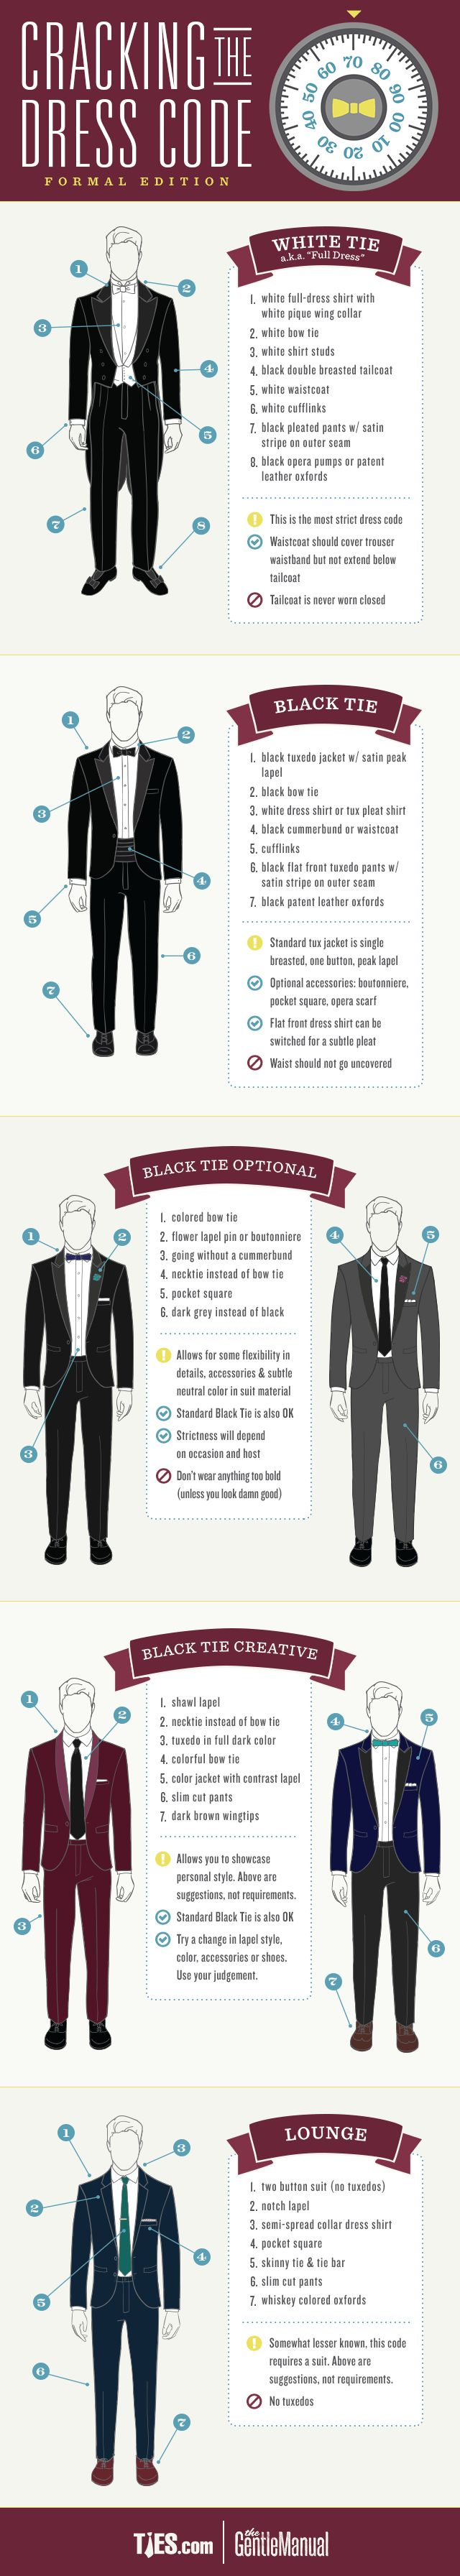 Cracking The Dress Code: Formal Edition [INFOGRAPHIC] #dress#code